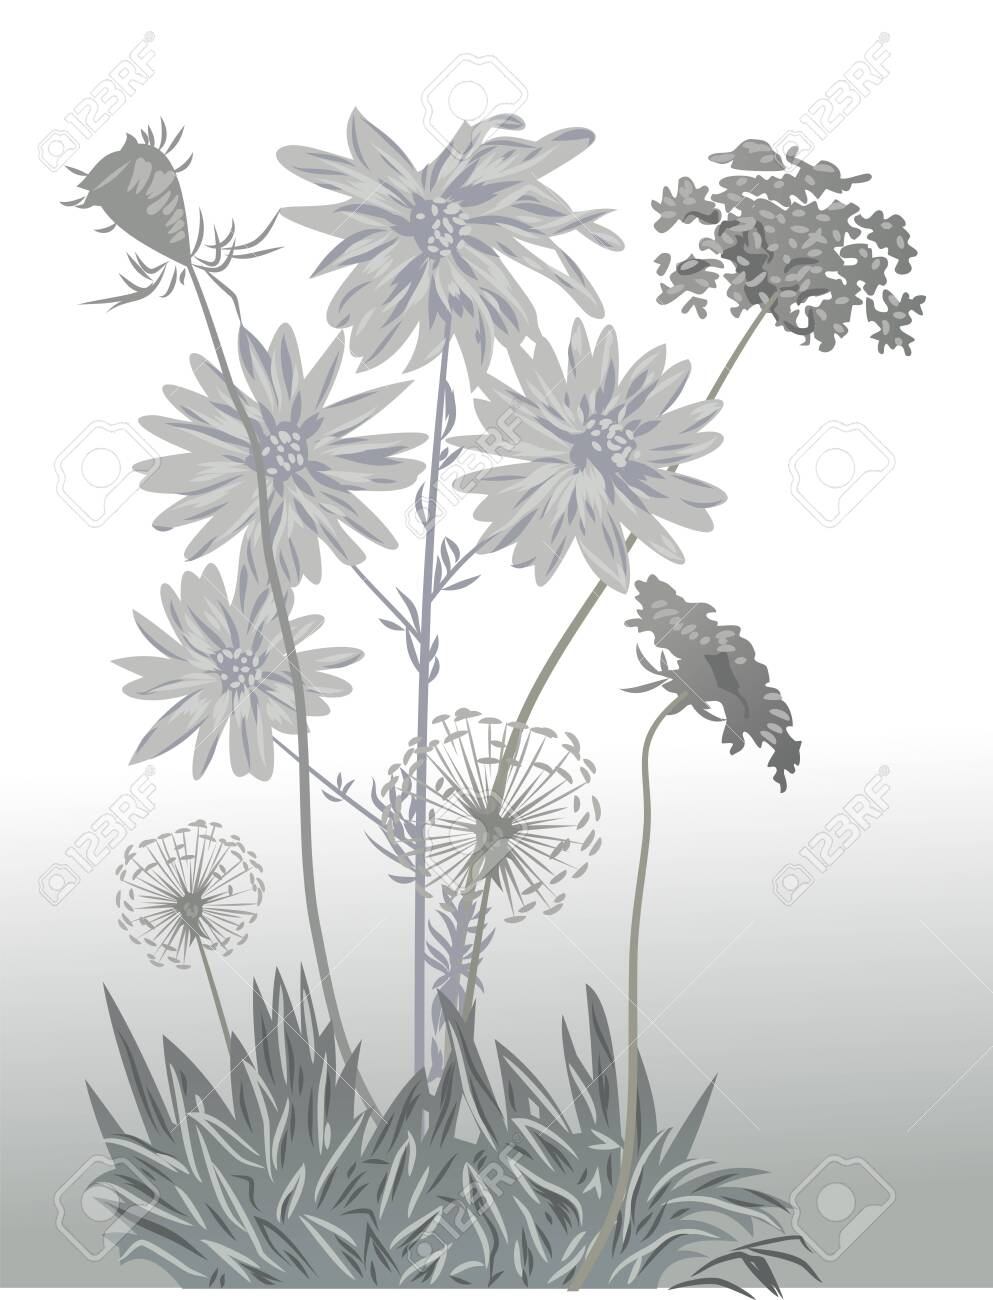 delicate wildflowers in soft colors - 130864057